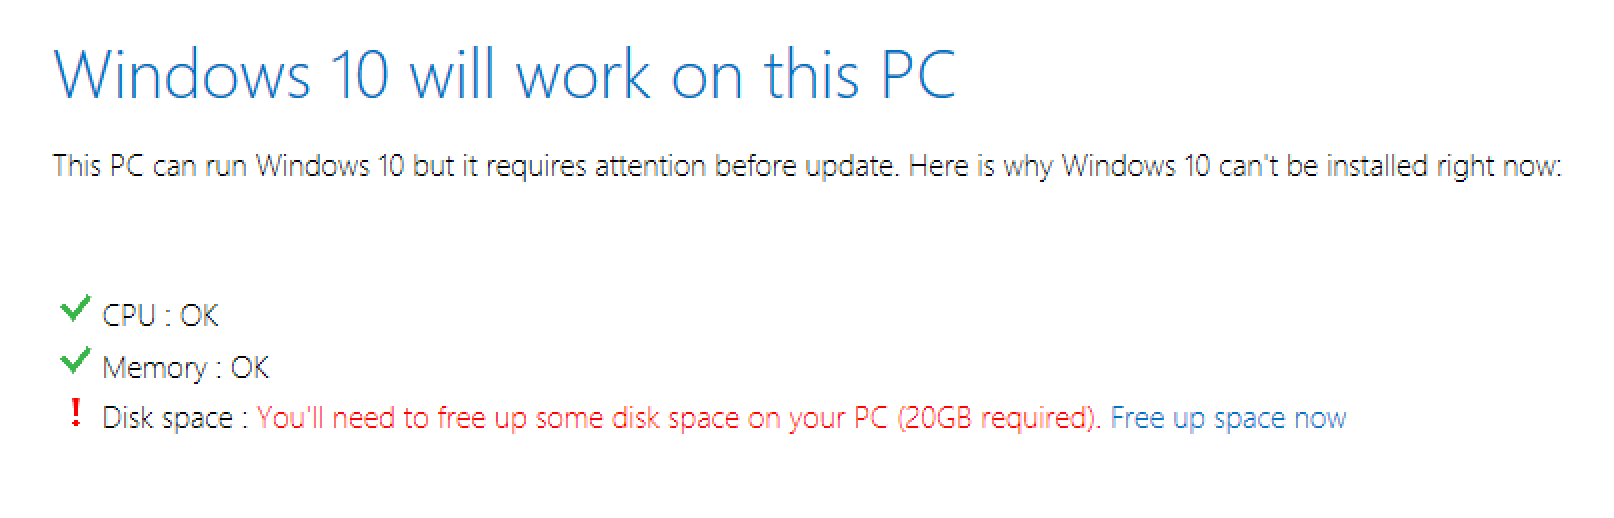 vmware fusion windows 10 out of disk space